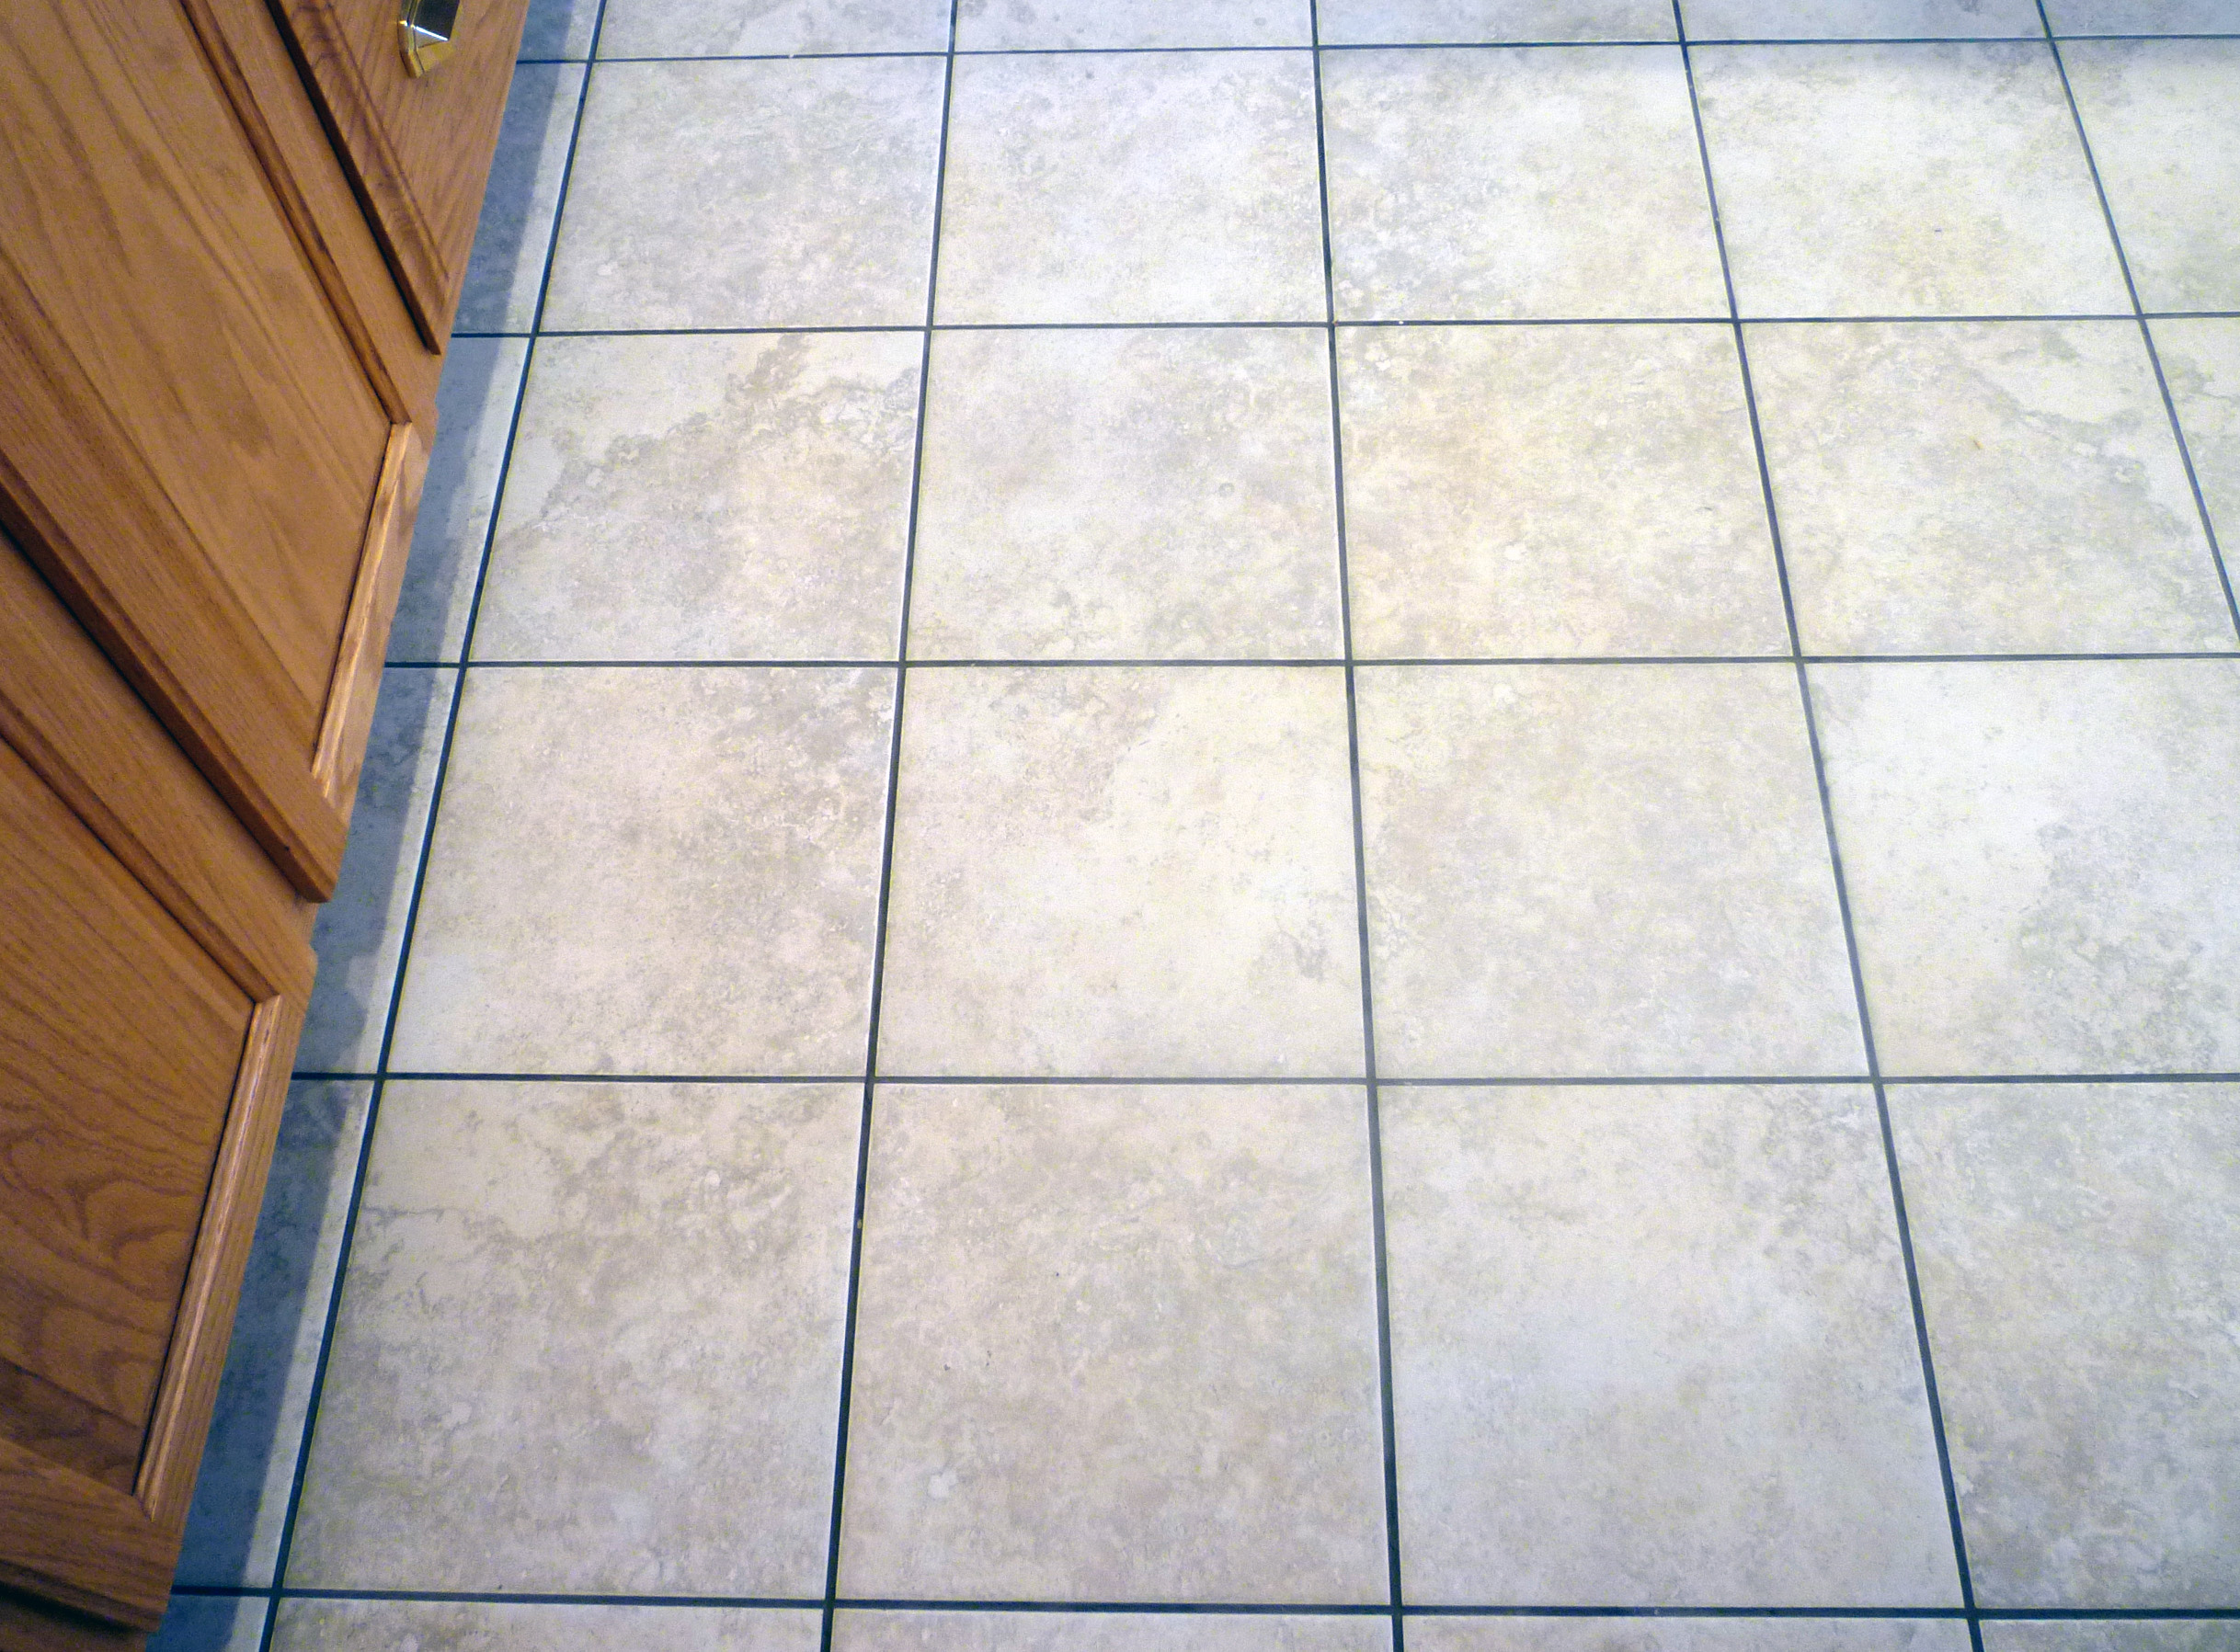 Grouting tiles floor